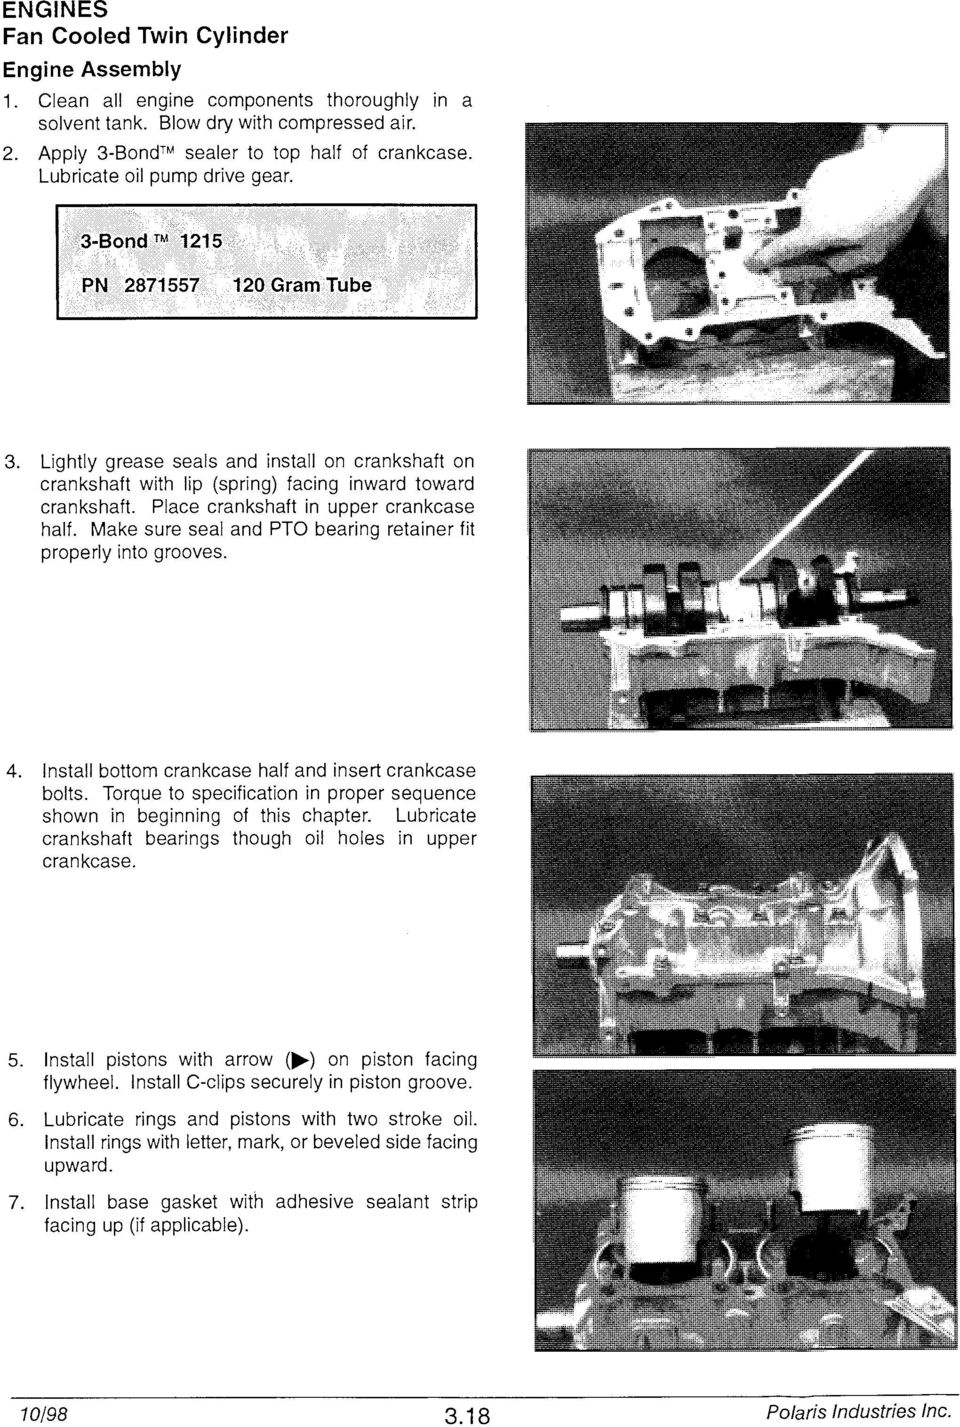 Engines Torque Specifications Pdf 2 4 Twin Cam Engine And Trans Bolts Diagram Place Crankshaft In Upper Crankcase Half Make Sure Seal Pto Bearing Retainer Fit Properly